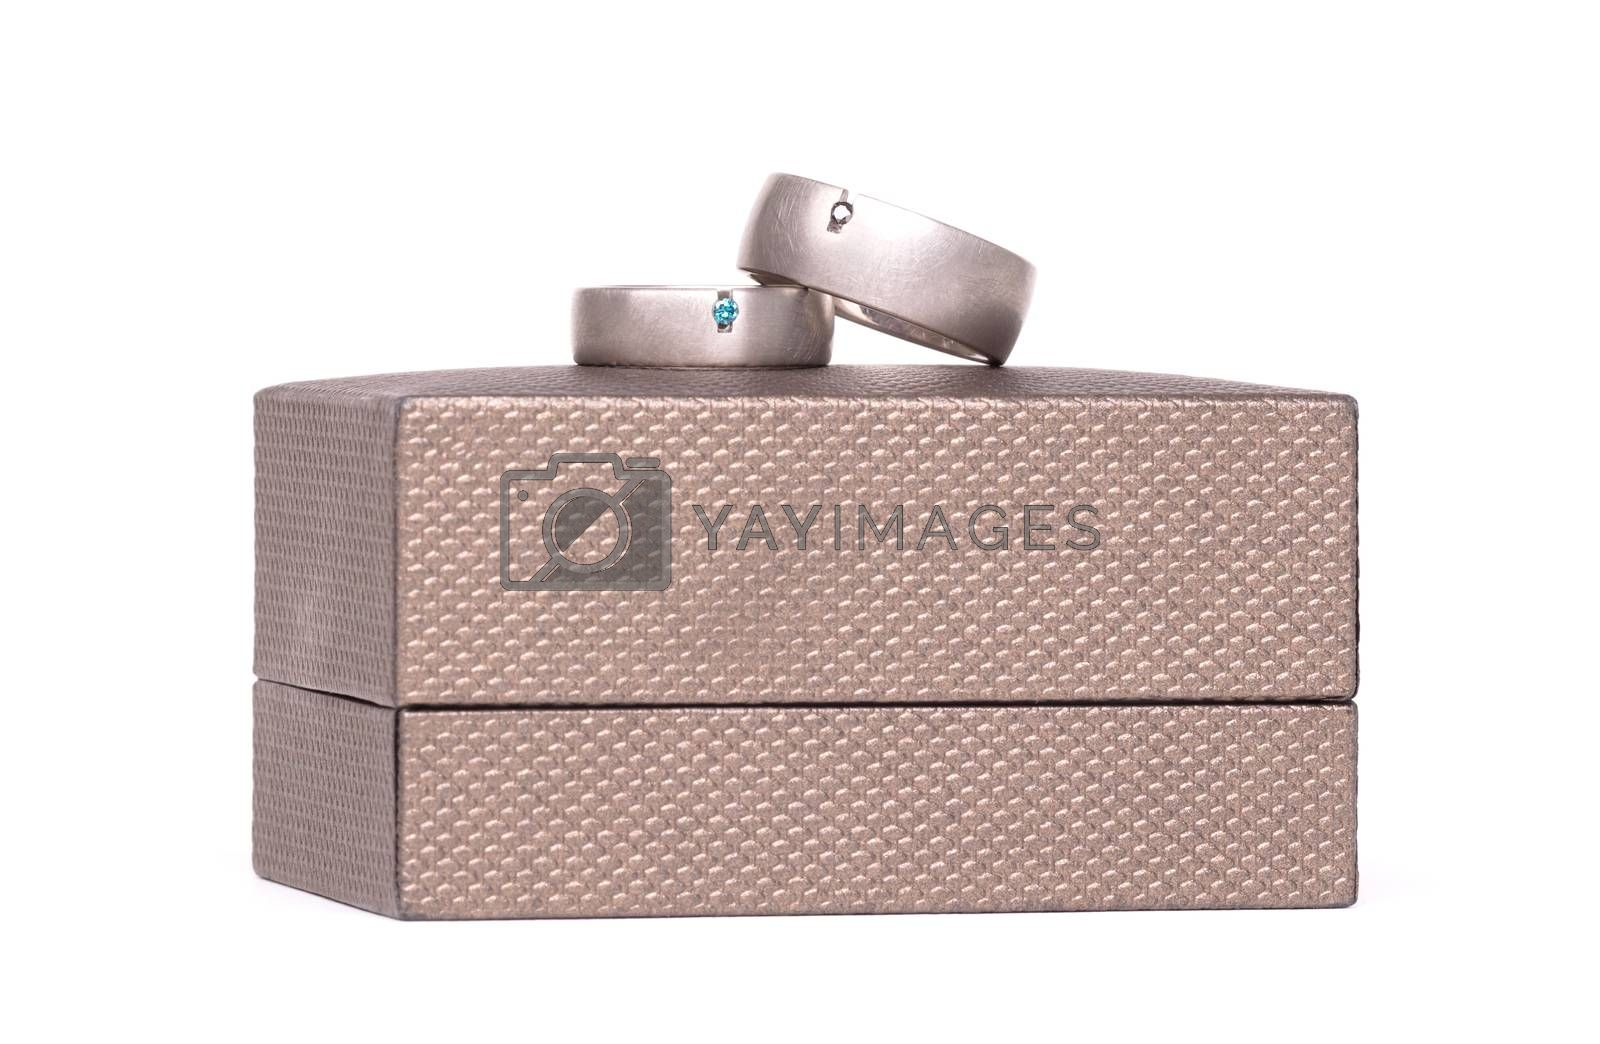 Wedding rings on box by michaklootwijk